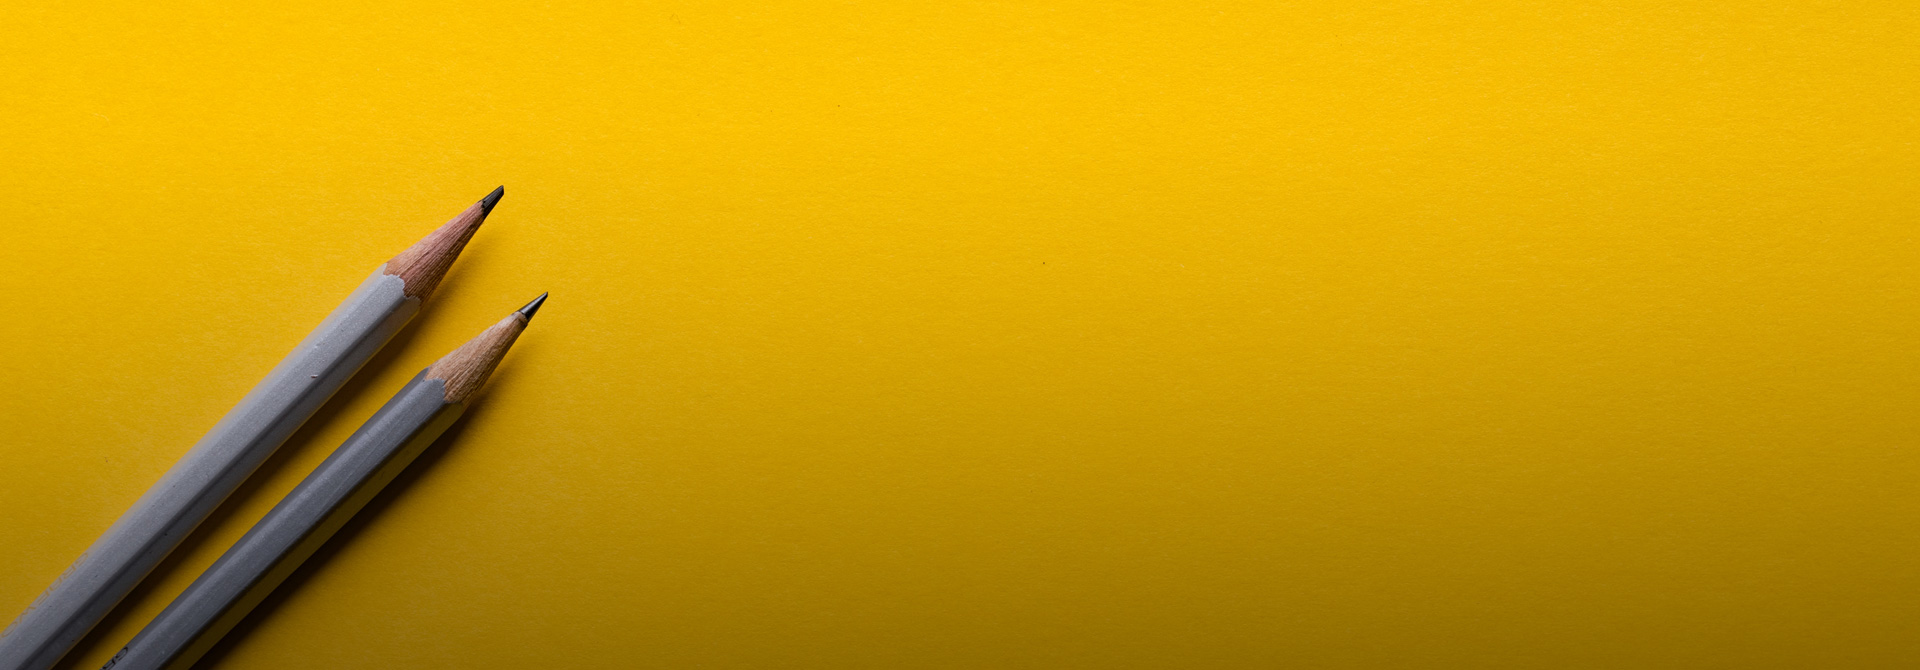 Two pencils laid on a yellow background.